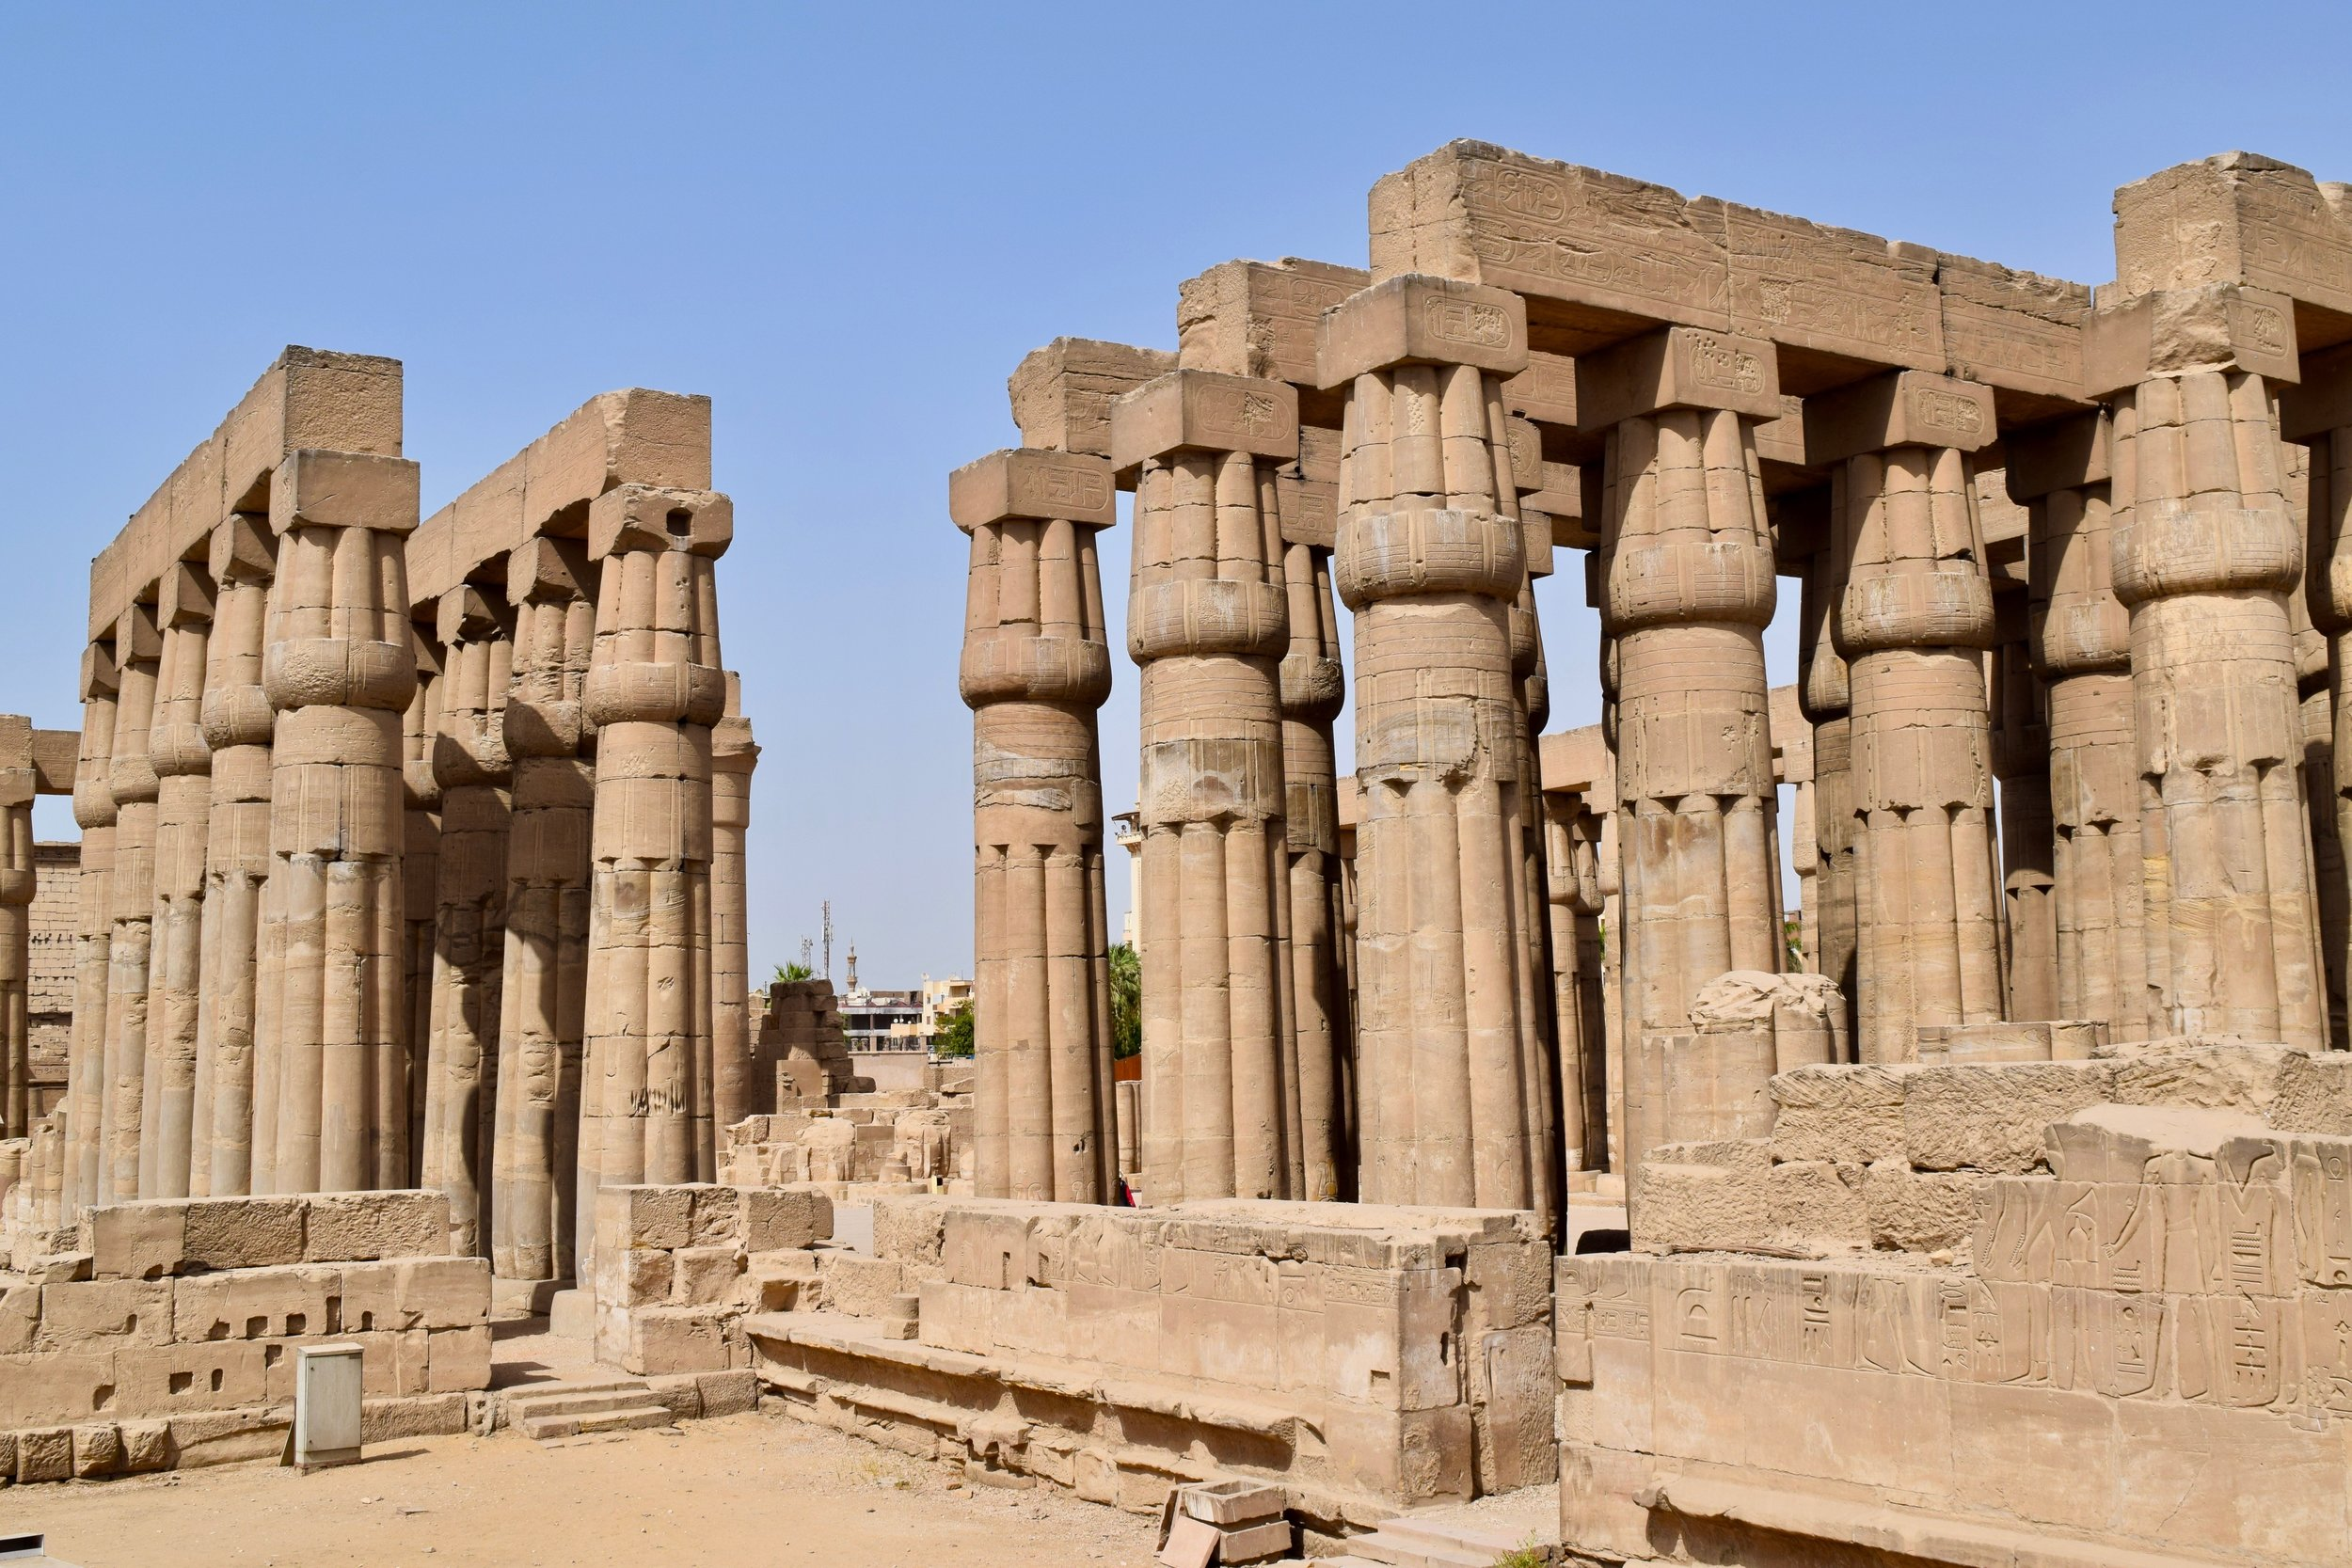 Luxor Temple from the exterior